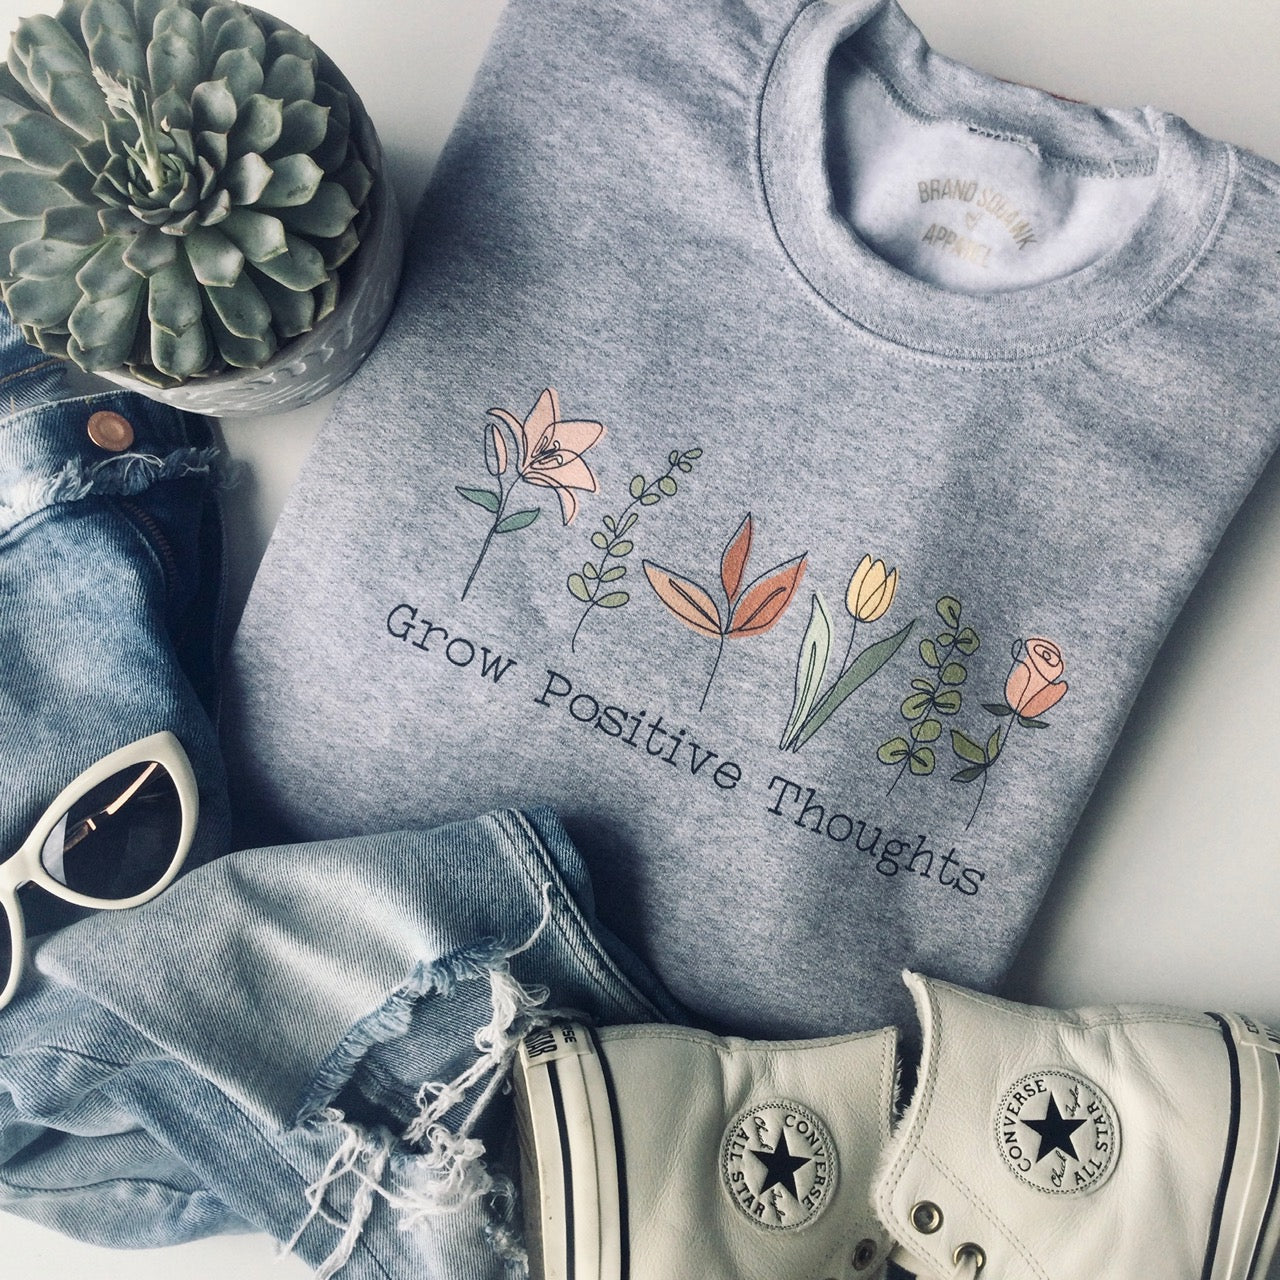 Grow Positive Thoughts Graphic Sweatshirt - Brand Squawk Apparel